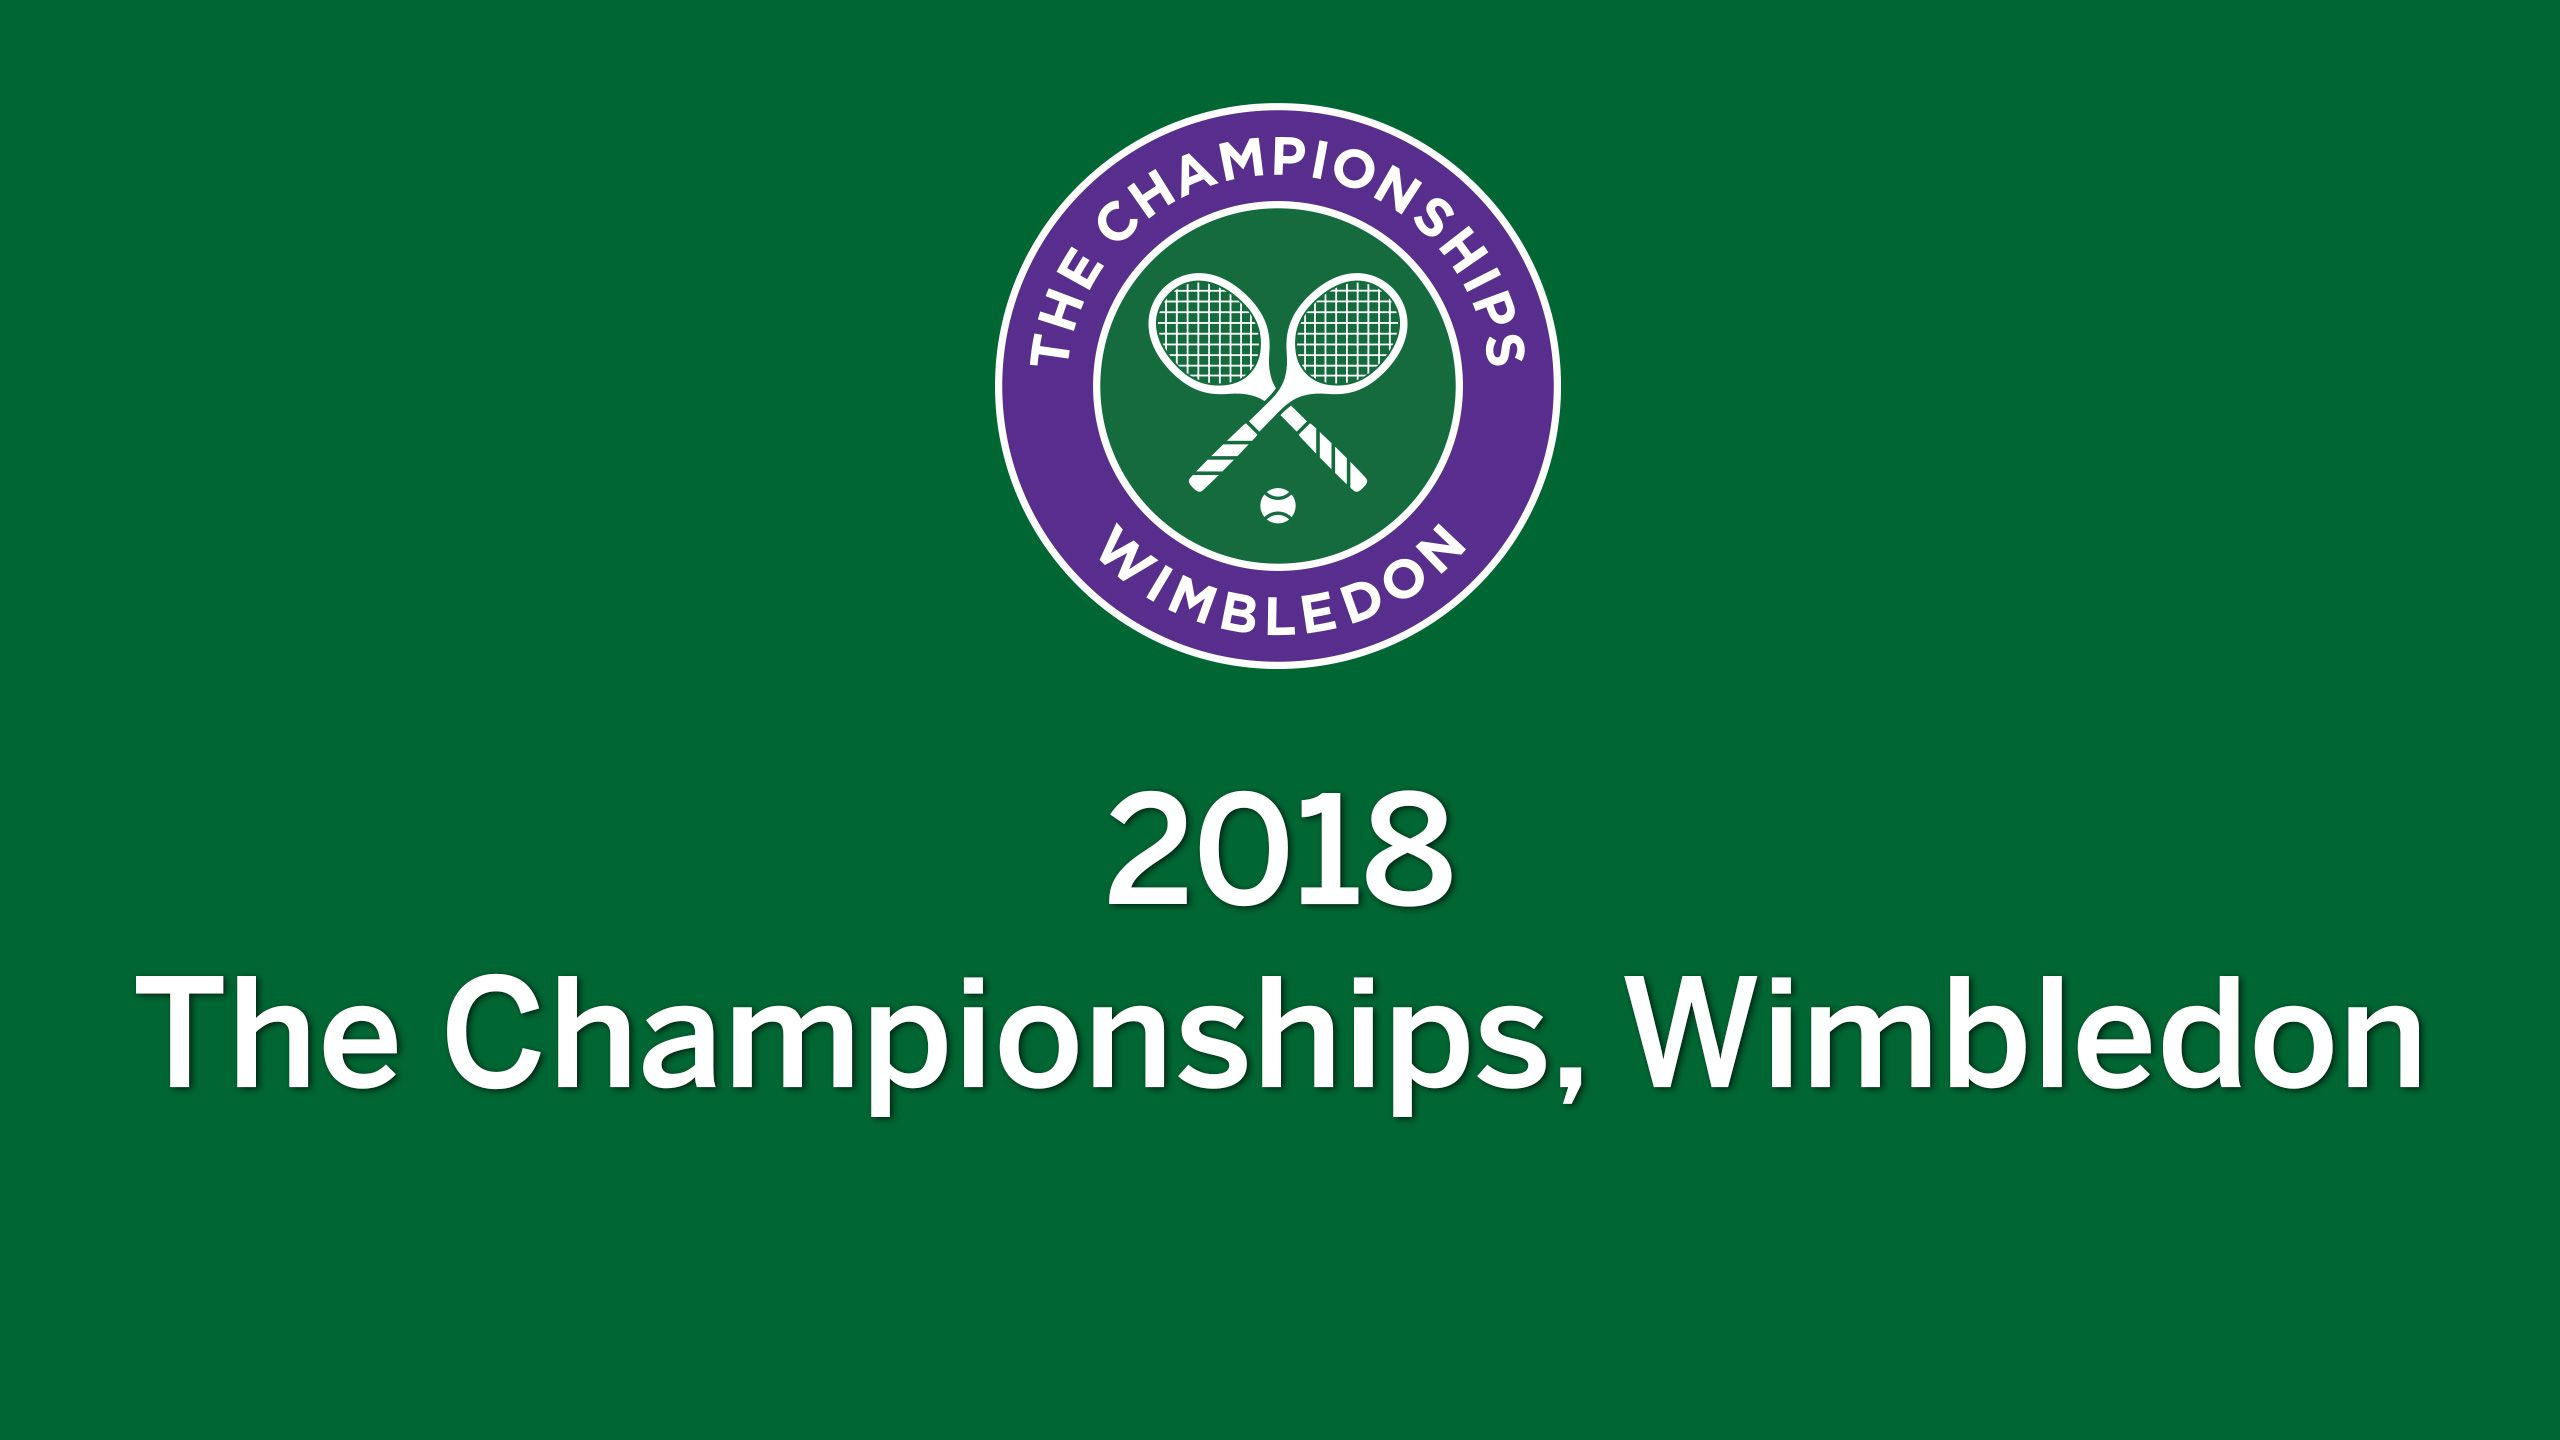 The Championships, Wimbledon 2018 (Round of 16: No. 1 Court & Outer Courts)